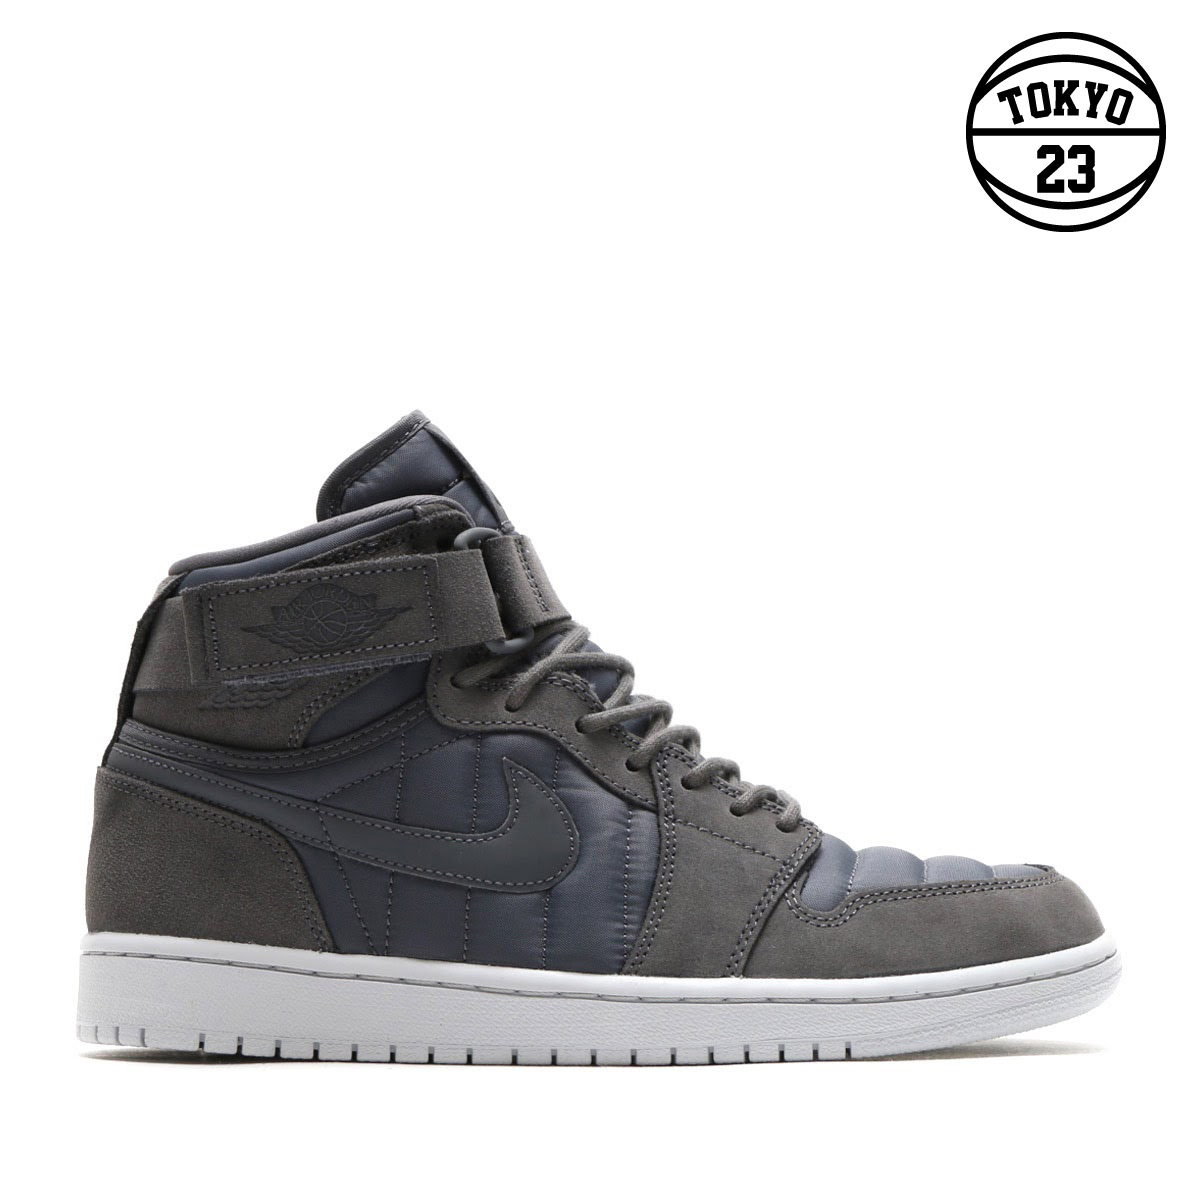 94bd46e5655294 NIKE AIR JORDAN 1 HIGH STRAP (Nike Air Jordan 1 Heiss trap) (DARK GREY DARK  GREY-PURE PLATINUM)